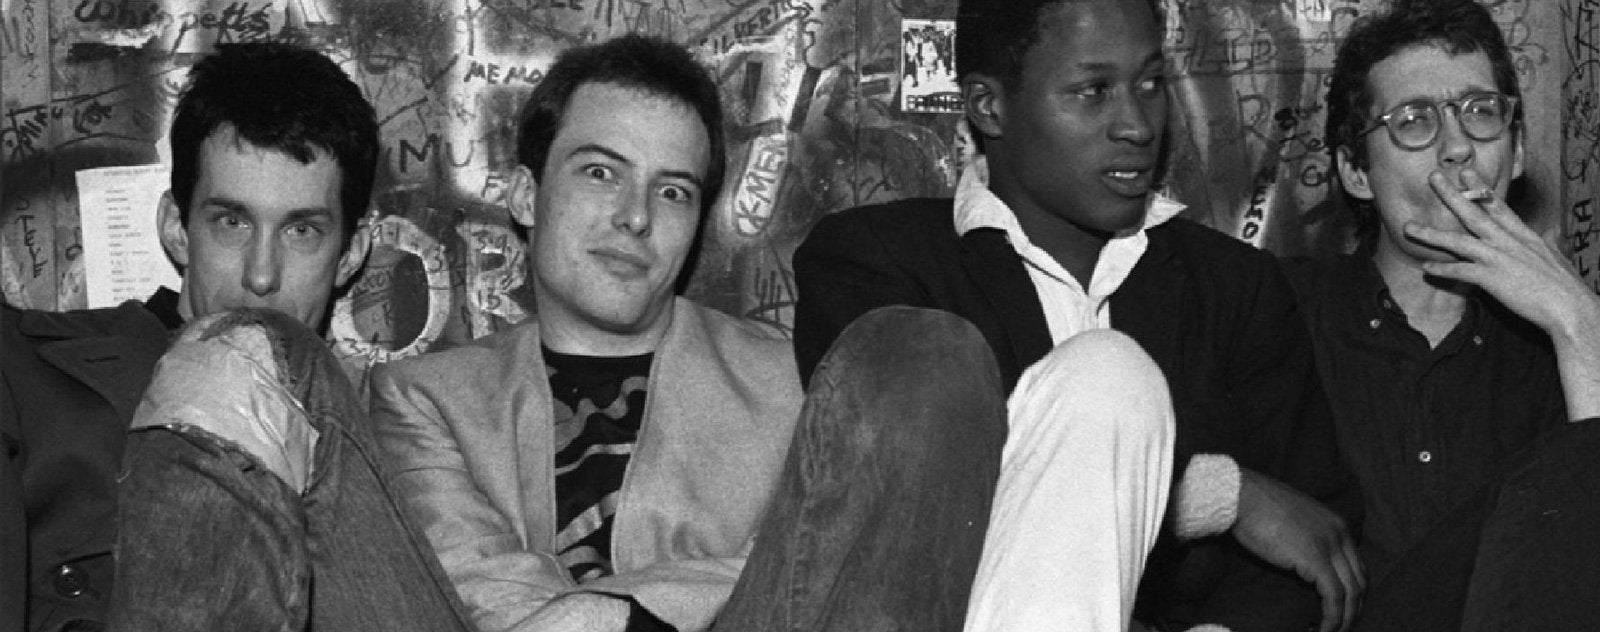 Punk Band The Dead Kennedys